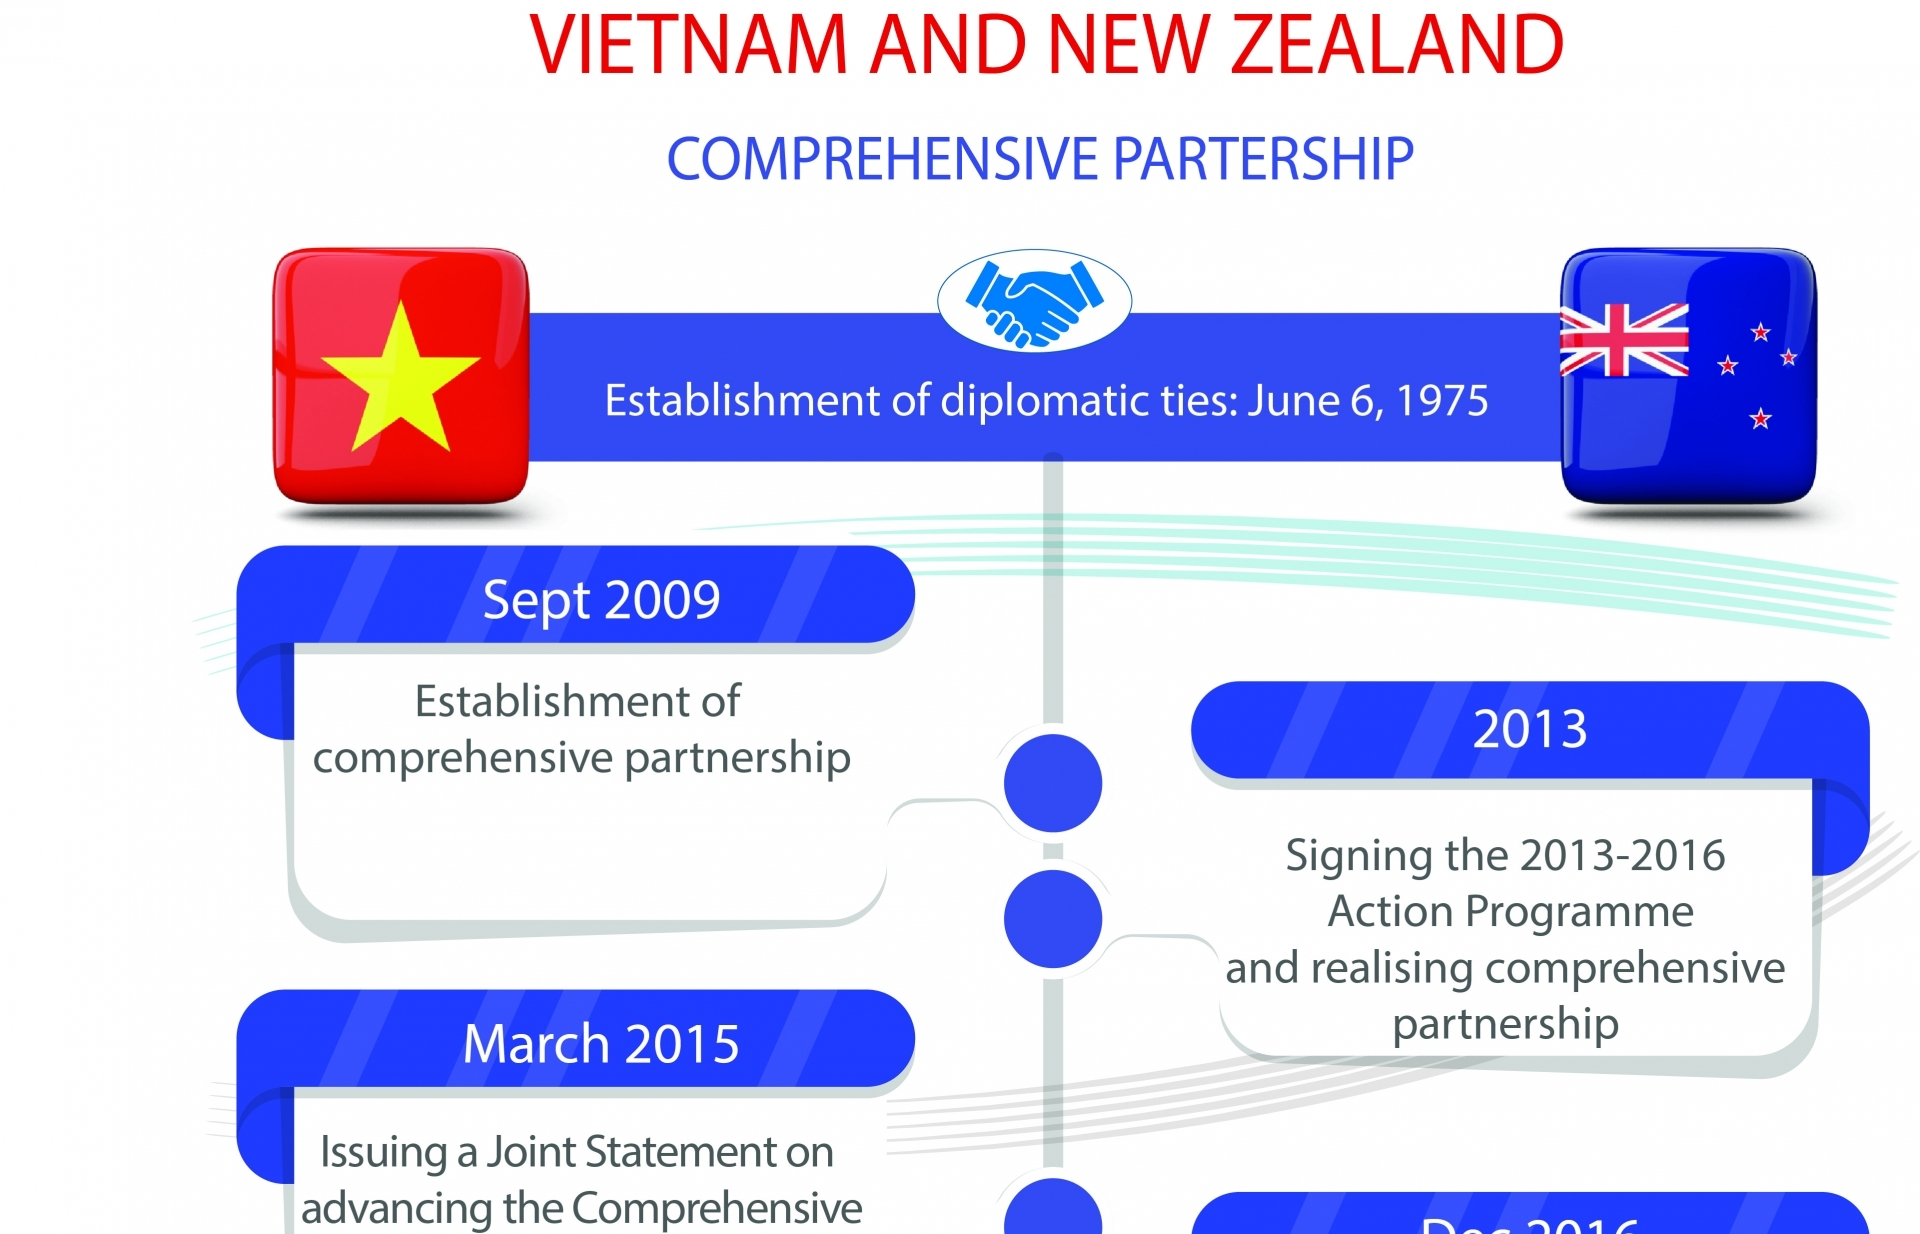 vietnam and new zealand comprehensive partnership